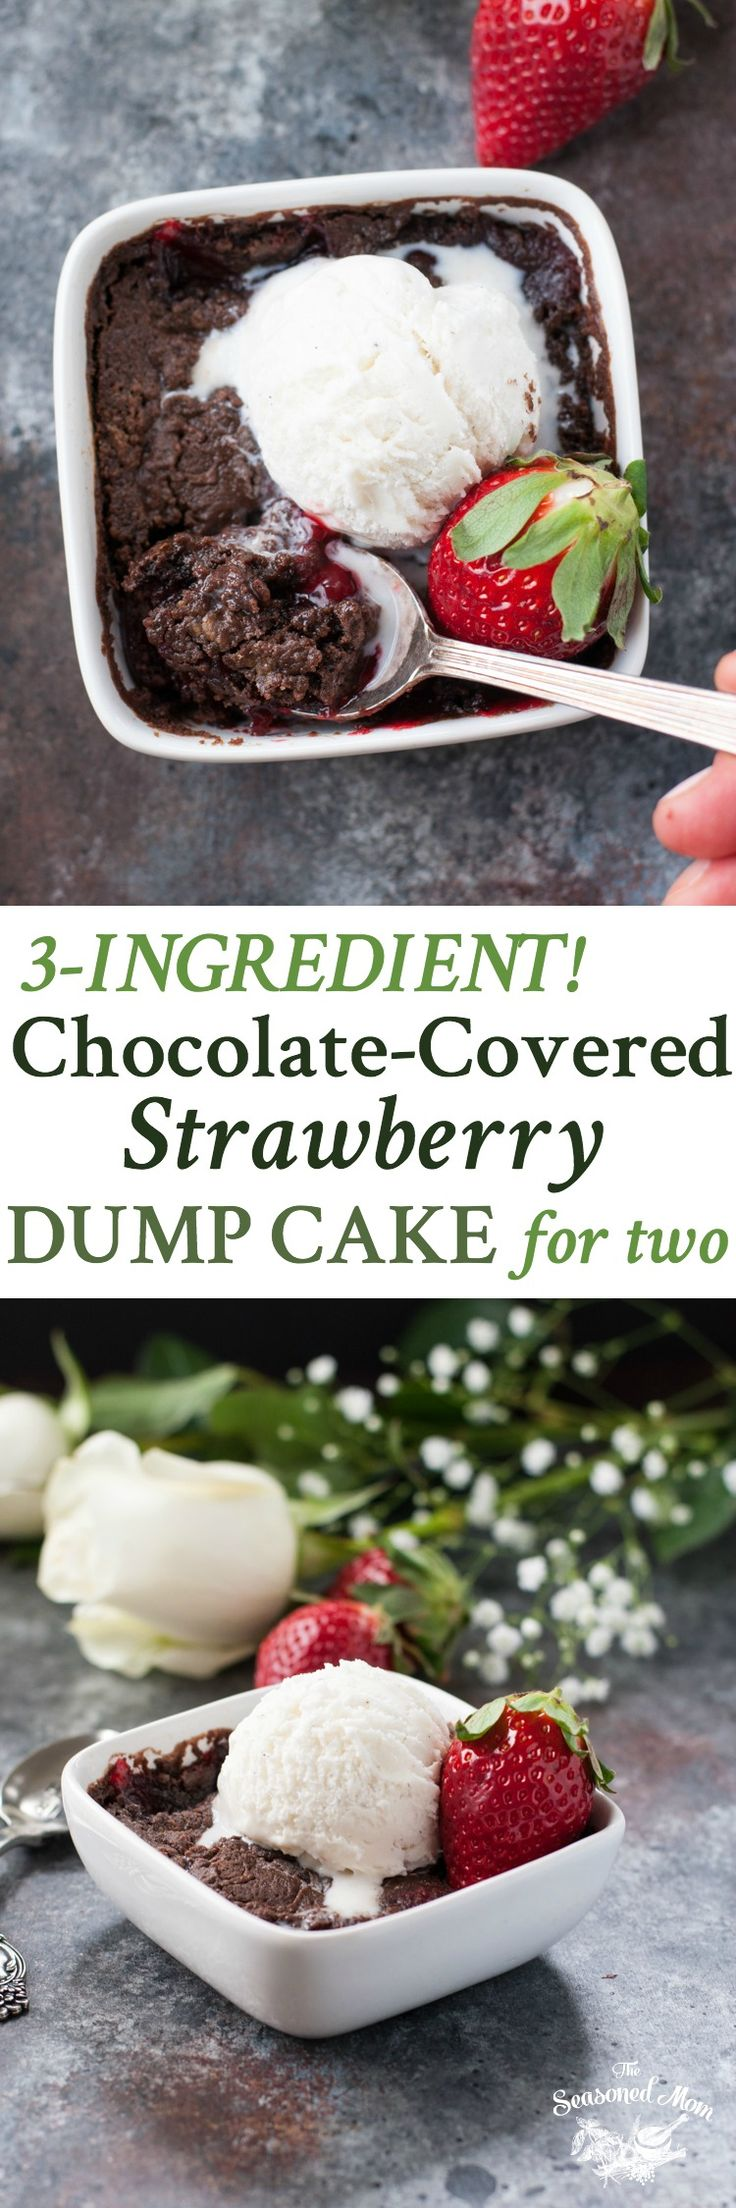 Just 3 ingredients and 5 minutes necessary for a decadent Chocolate Covered Strawberry Dump Cake for Two! The perfect easy dessert for Valentine's Day!